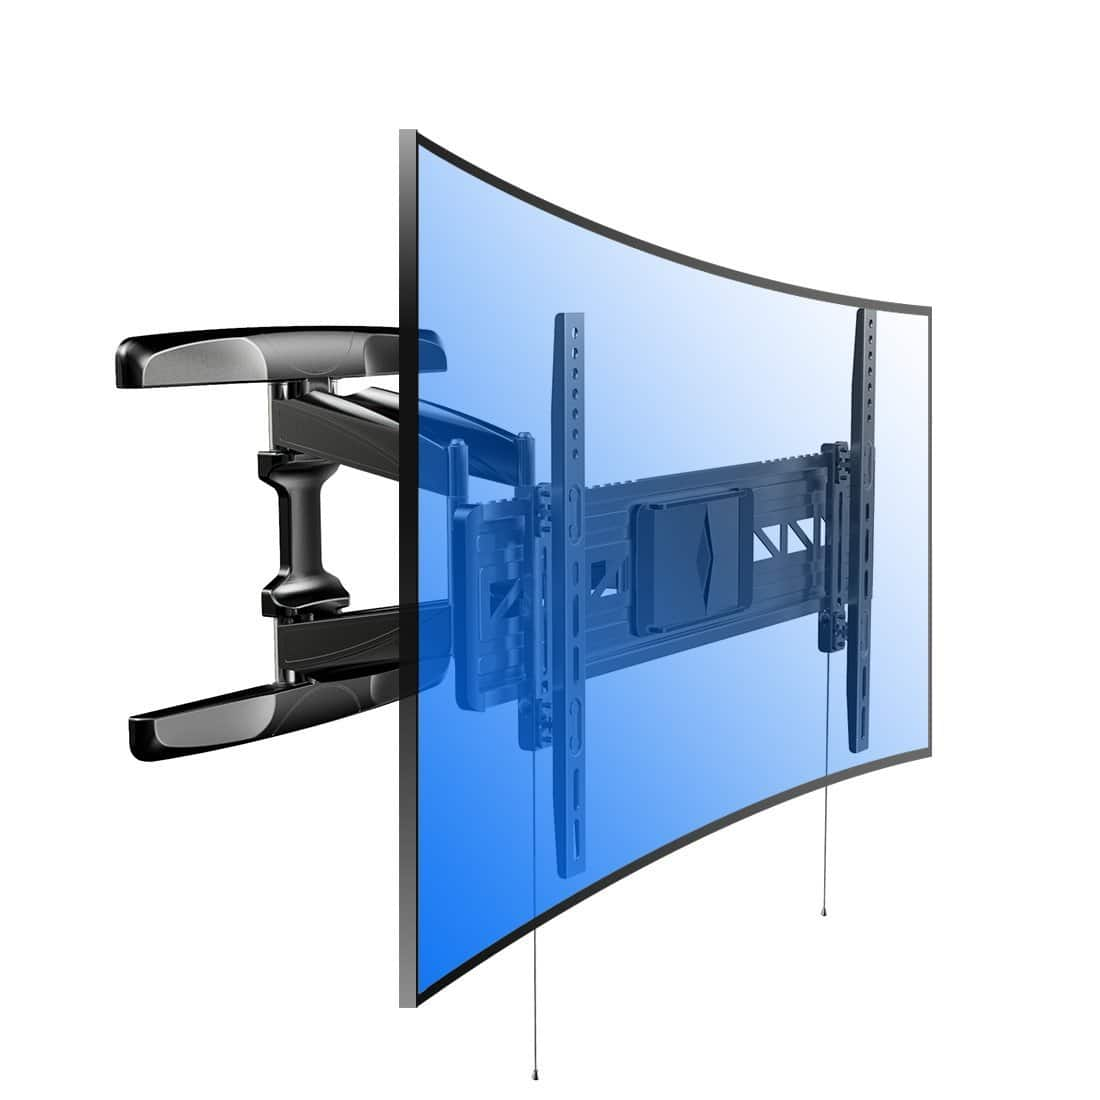 Wall Mount Bracket for curved and flat TVs most of 32-70 Inches LED, LCD,OLED TVs With Articulating Arm Swivel & Tilt $68.79